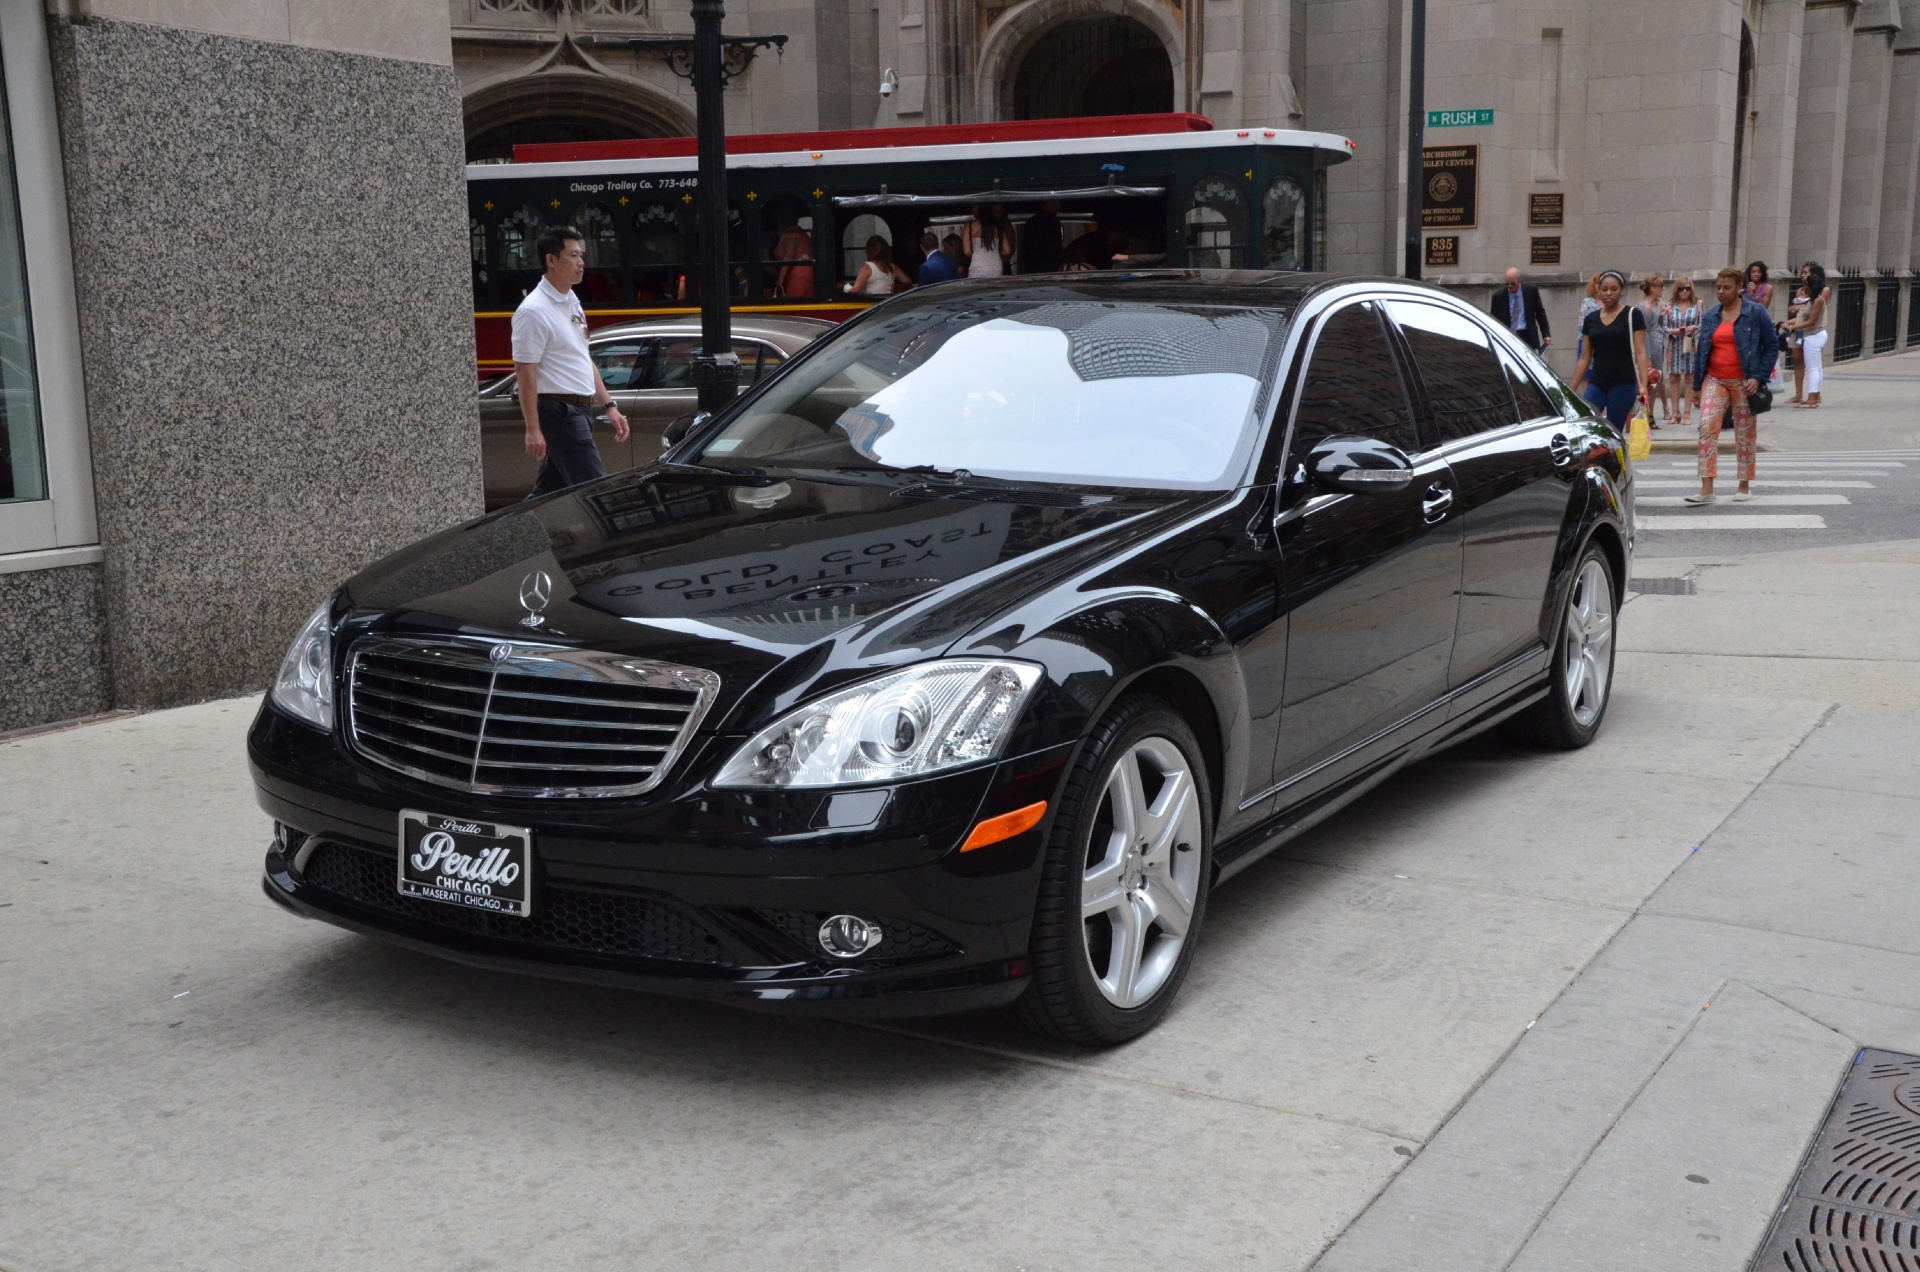 2008 mercedes benz s class s550 4matic used bentley used rolls royce used lamborghini. Black Bedroom Furniture Sets. Home Design Ideas